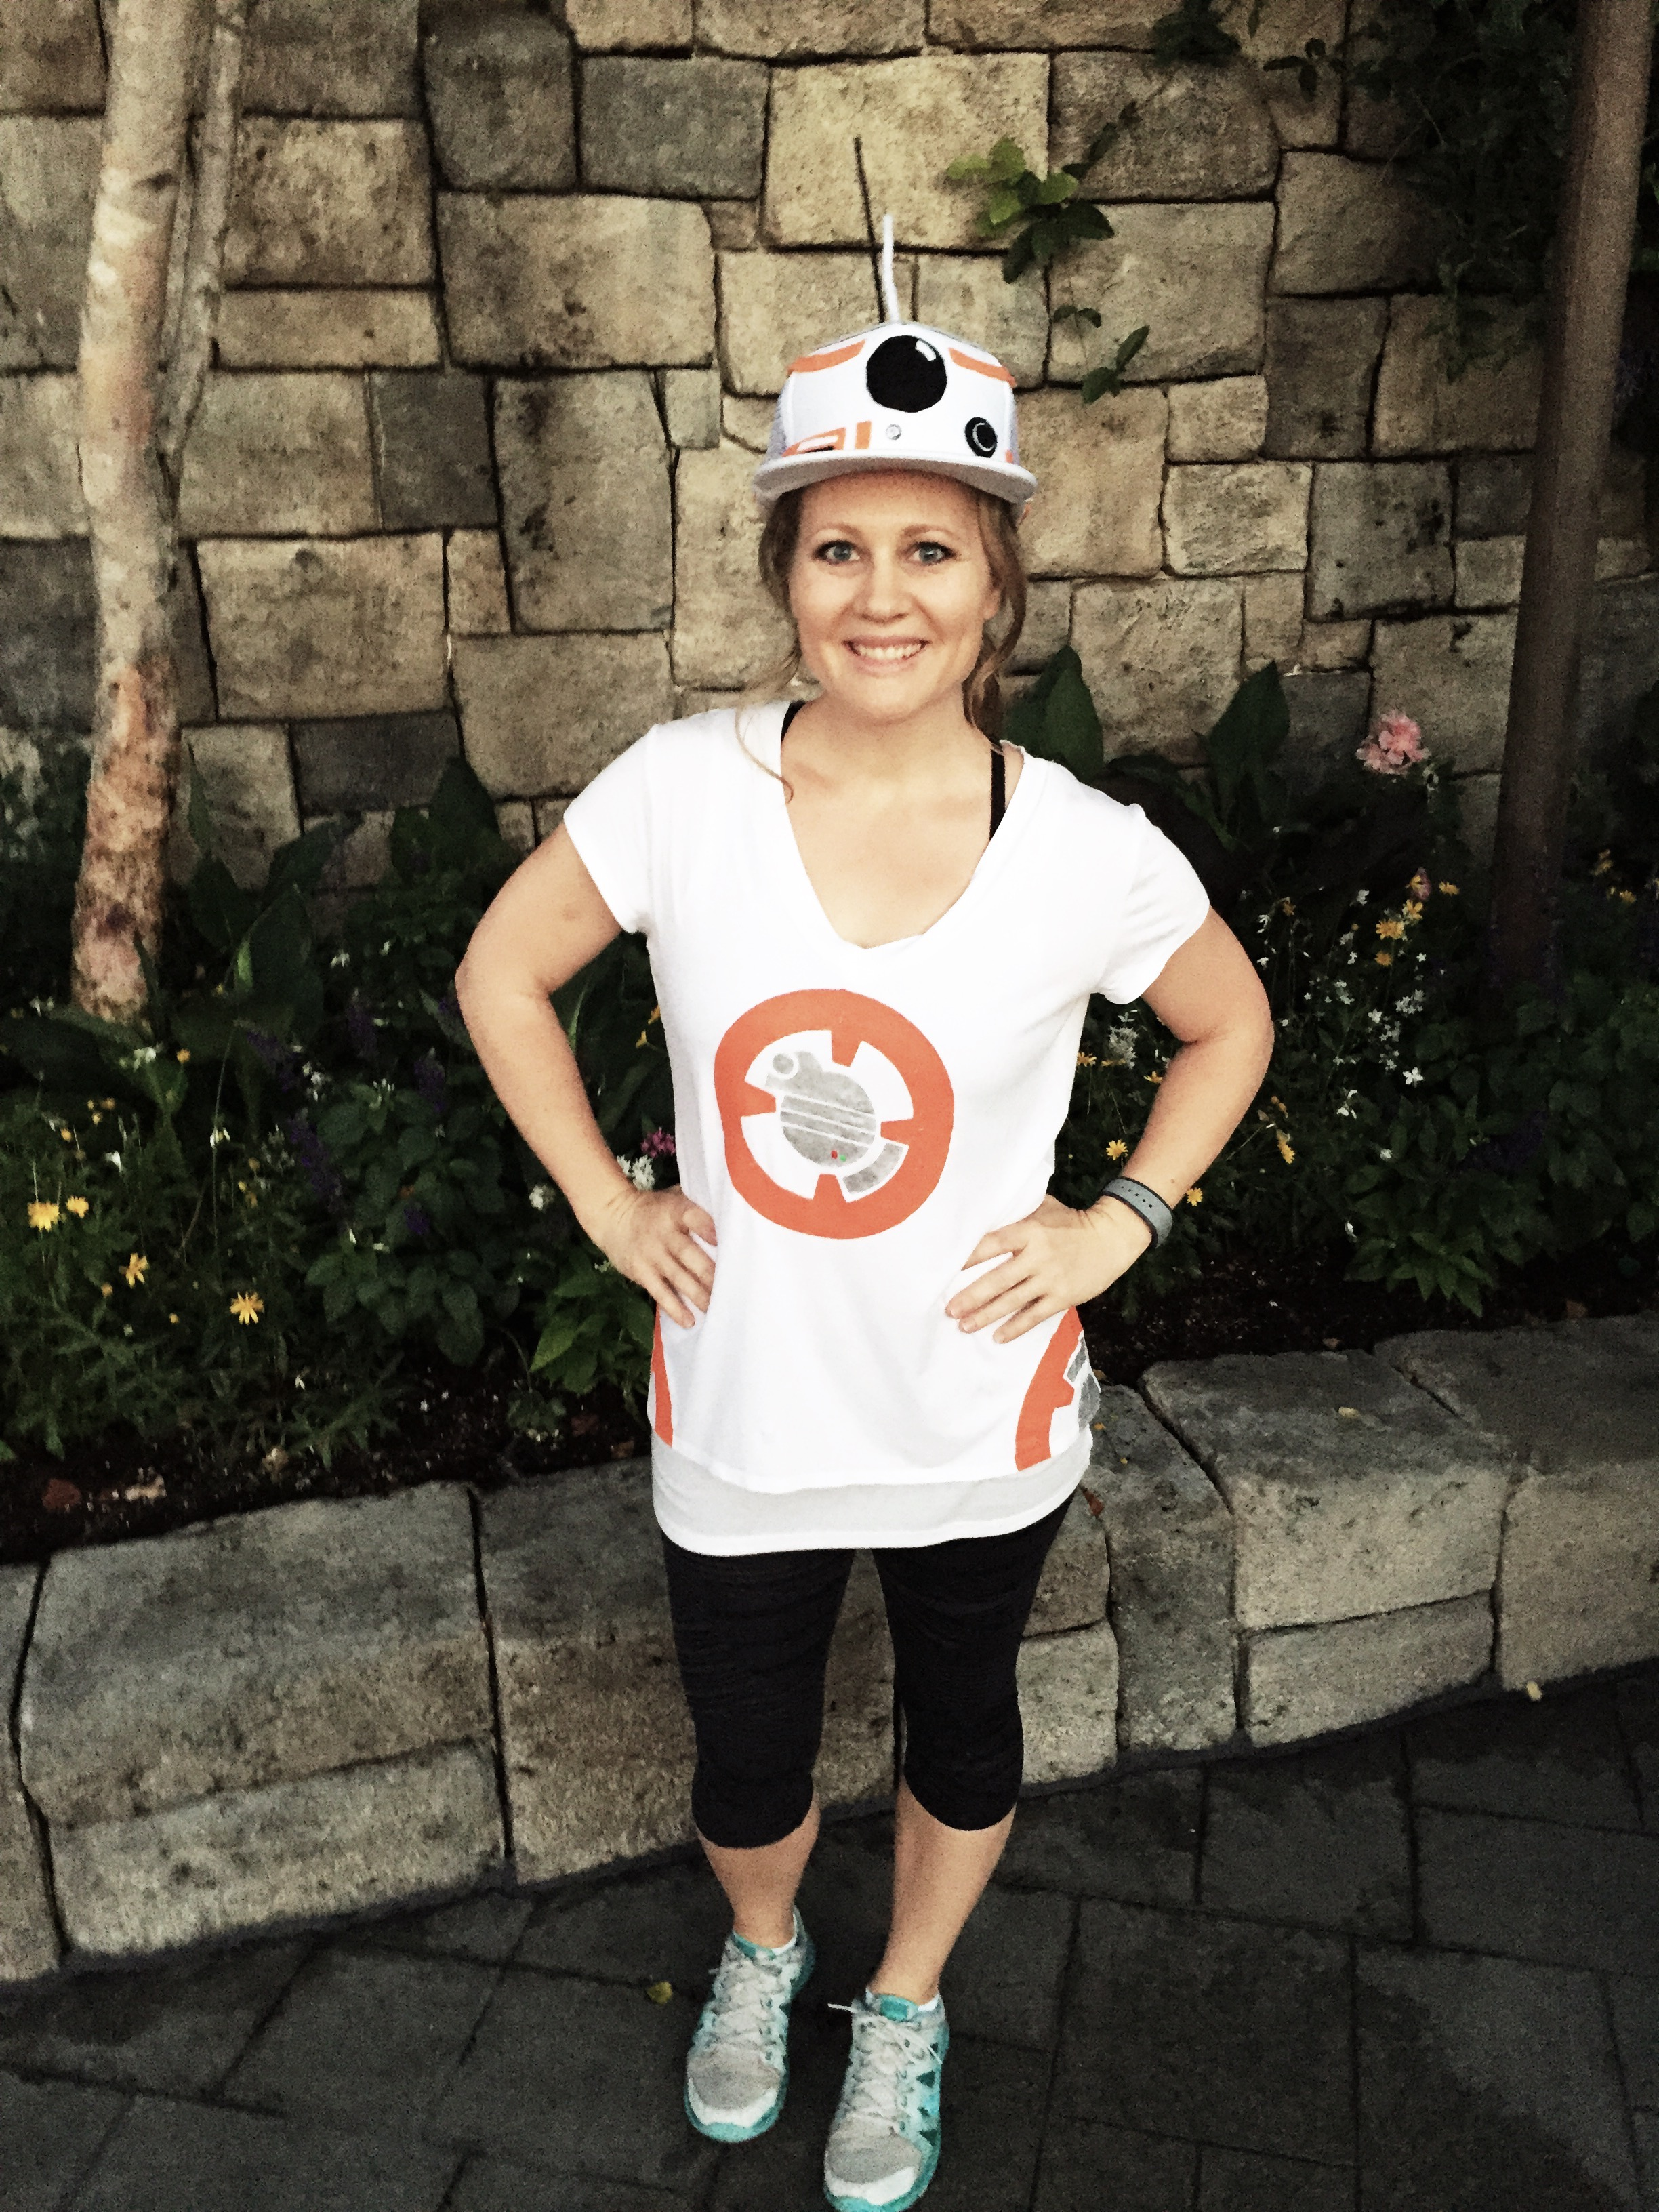 DIY BB-8 Droid Costume - hat and shirt!